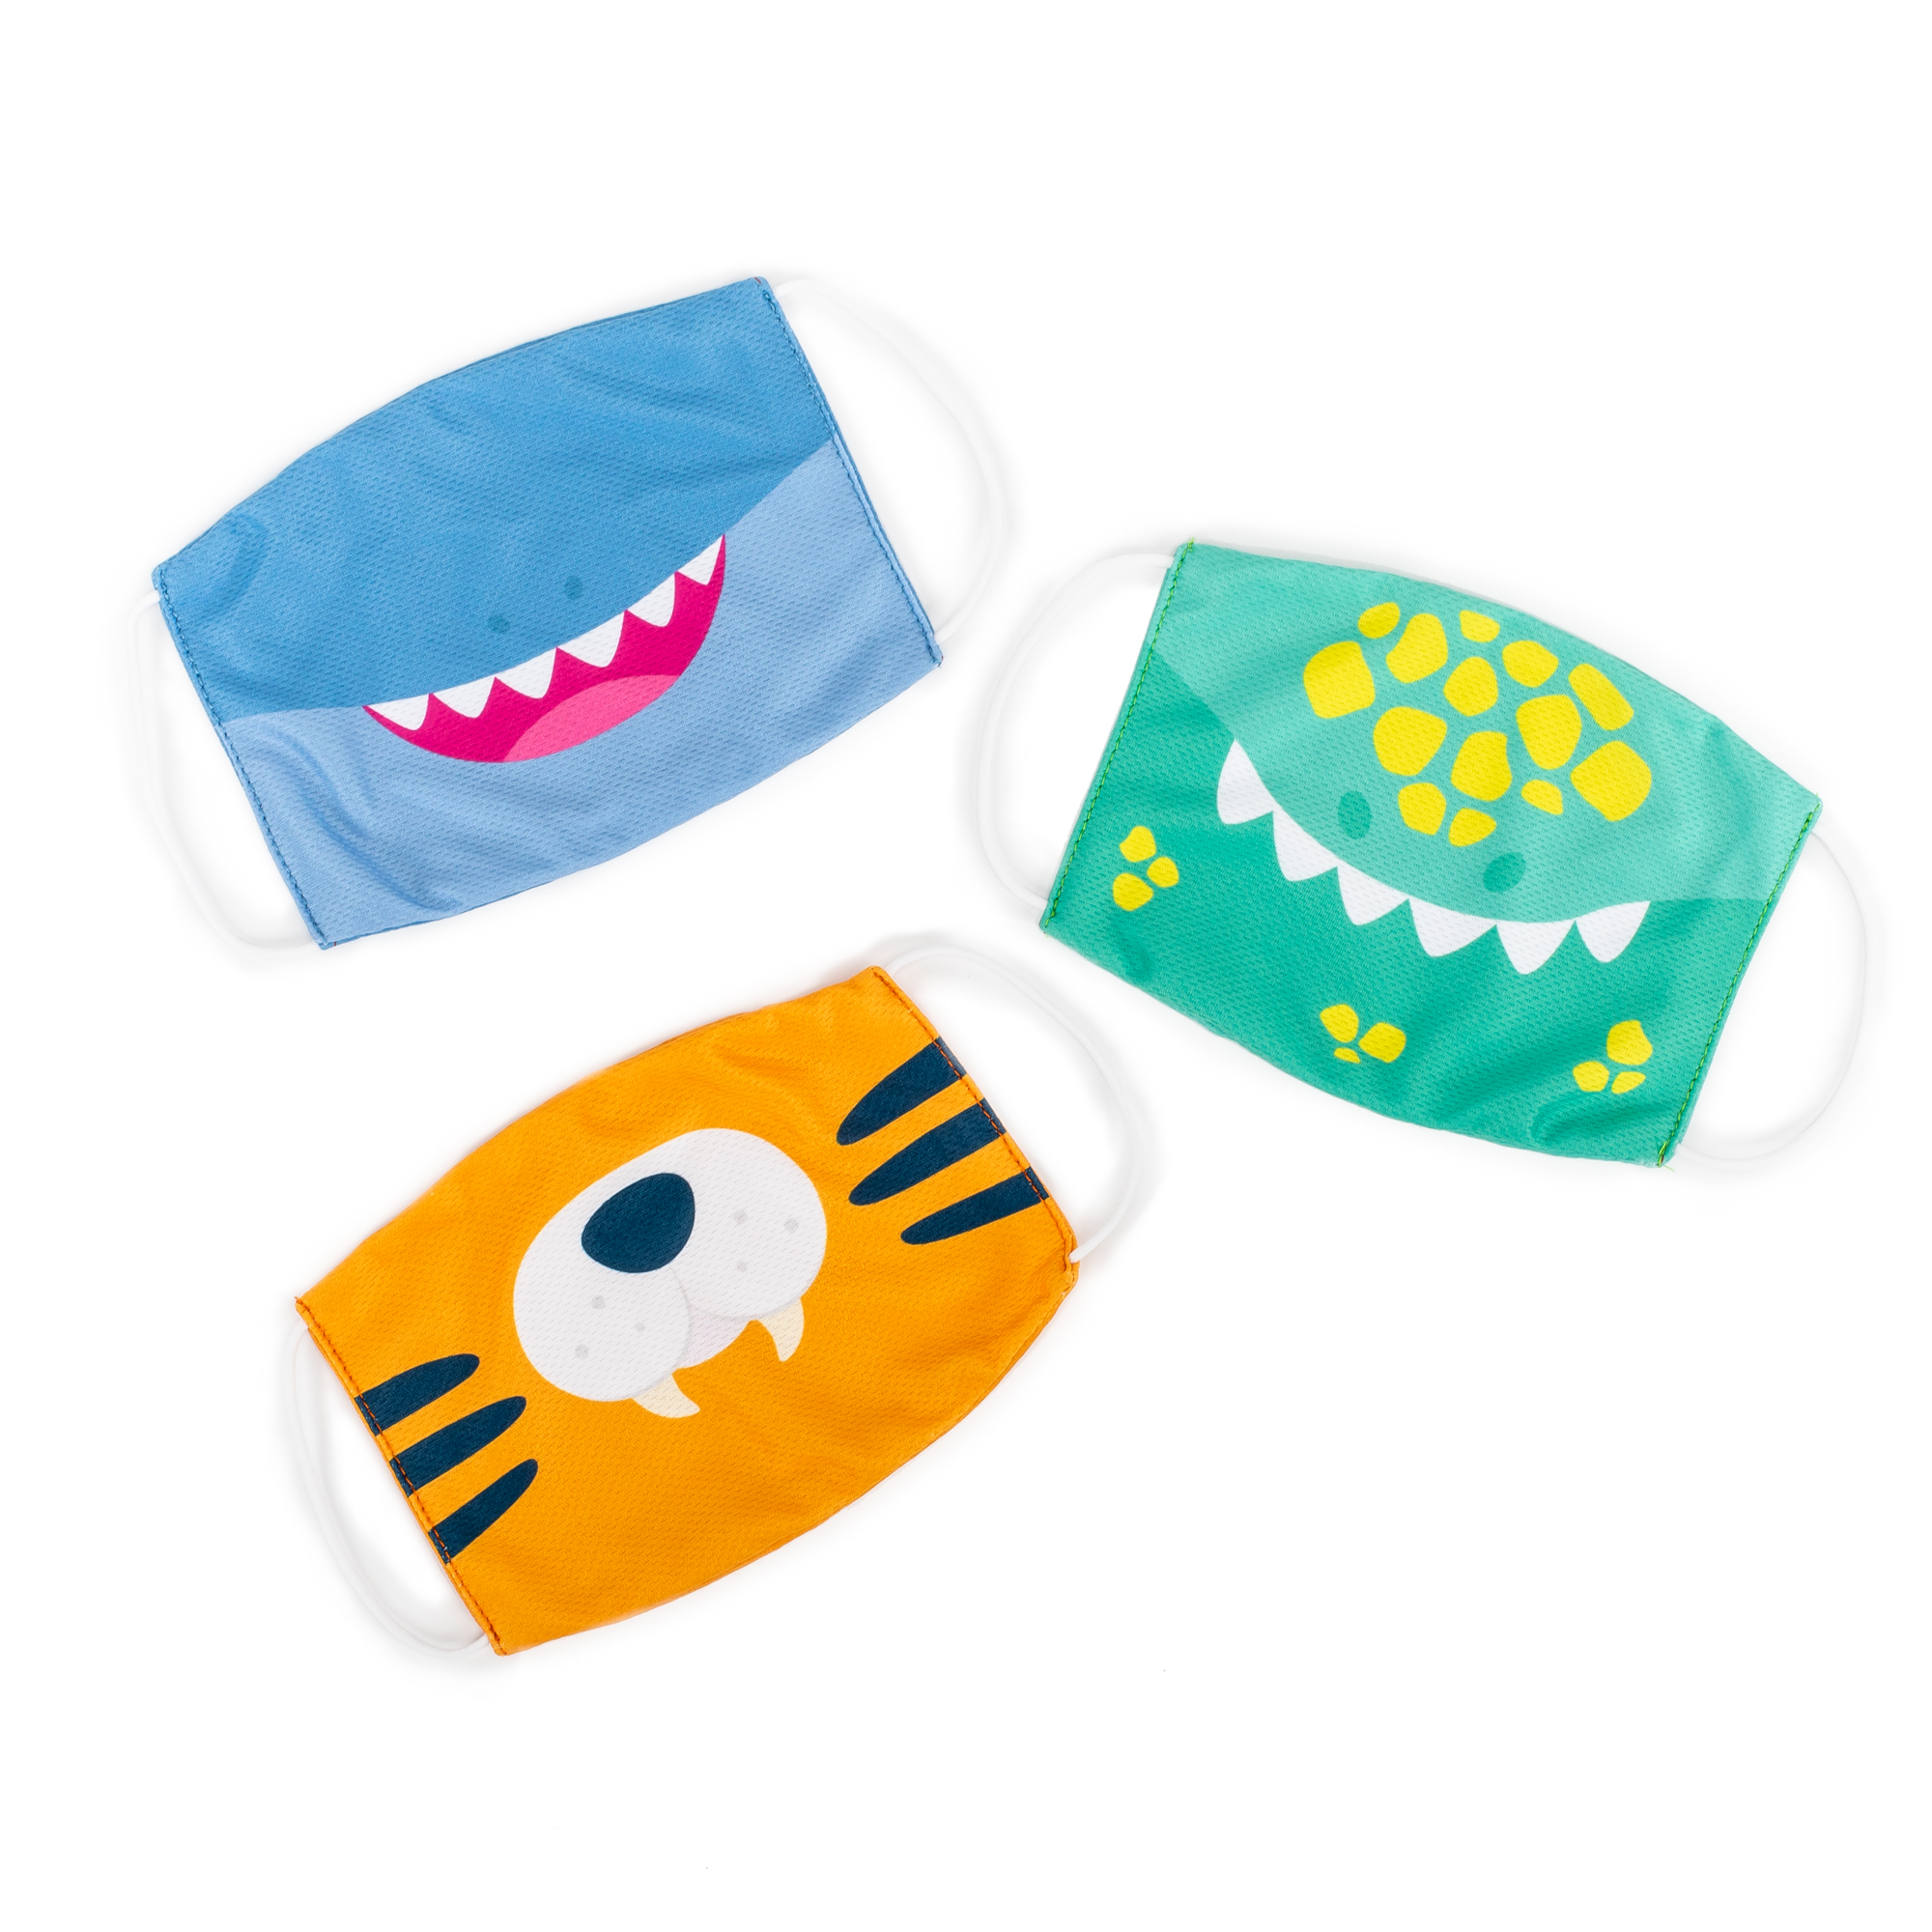 Kids' Face Masks 3-Pack: Dinosaur, Tiger, Shark Set